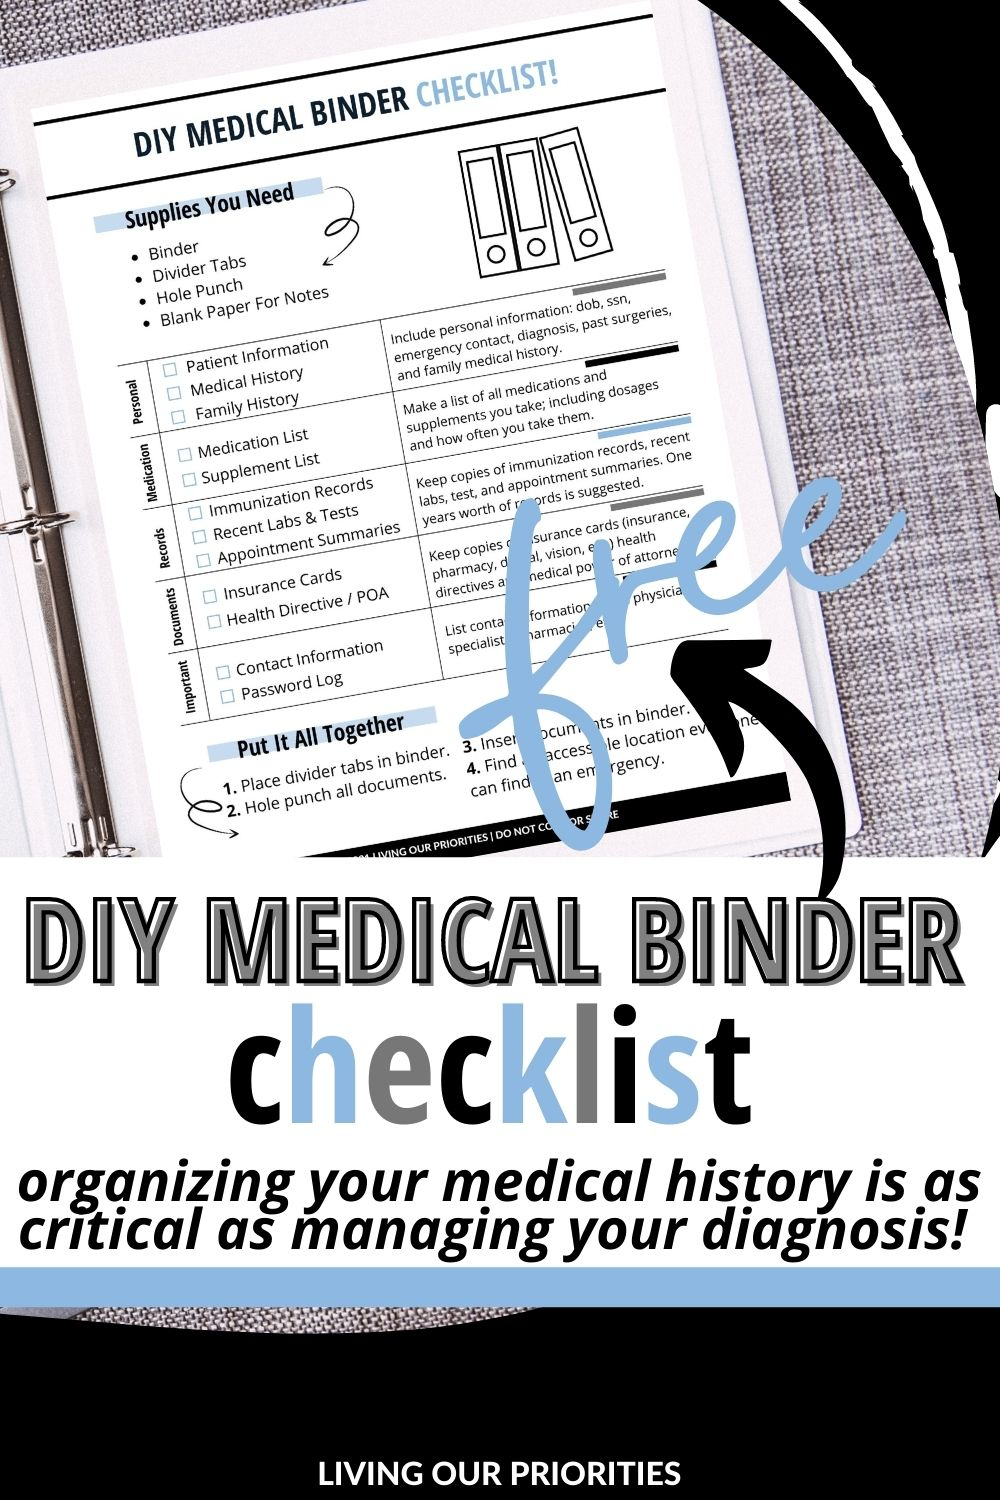 Organizing your medical history is as critical as managing your diagnosis. Learn how to create your own DIY Medical Binder to keep your peace and help save your life!